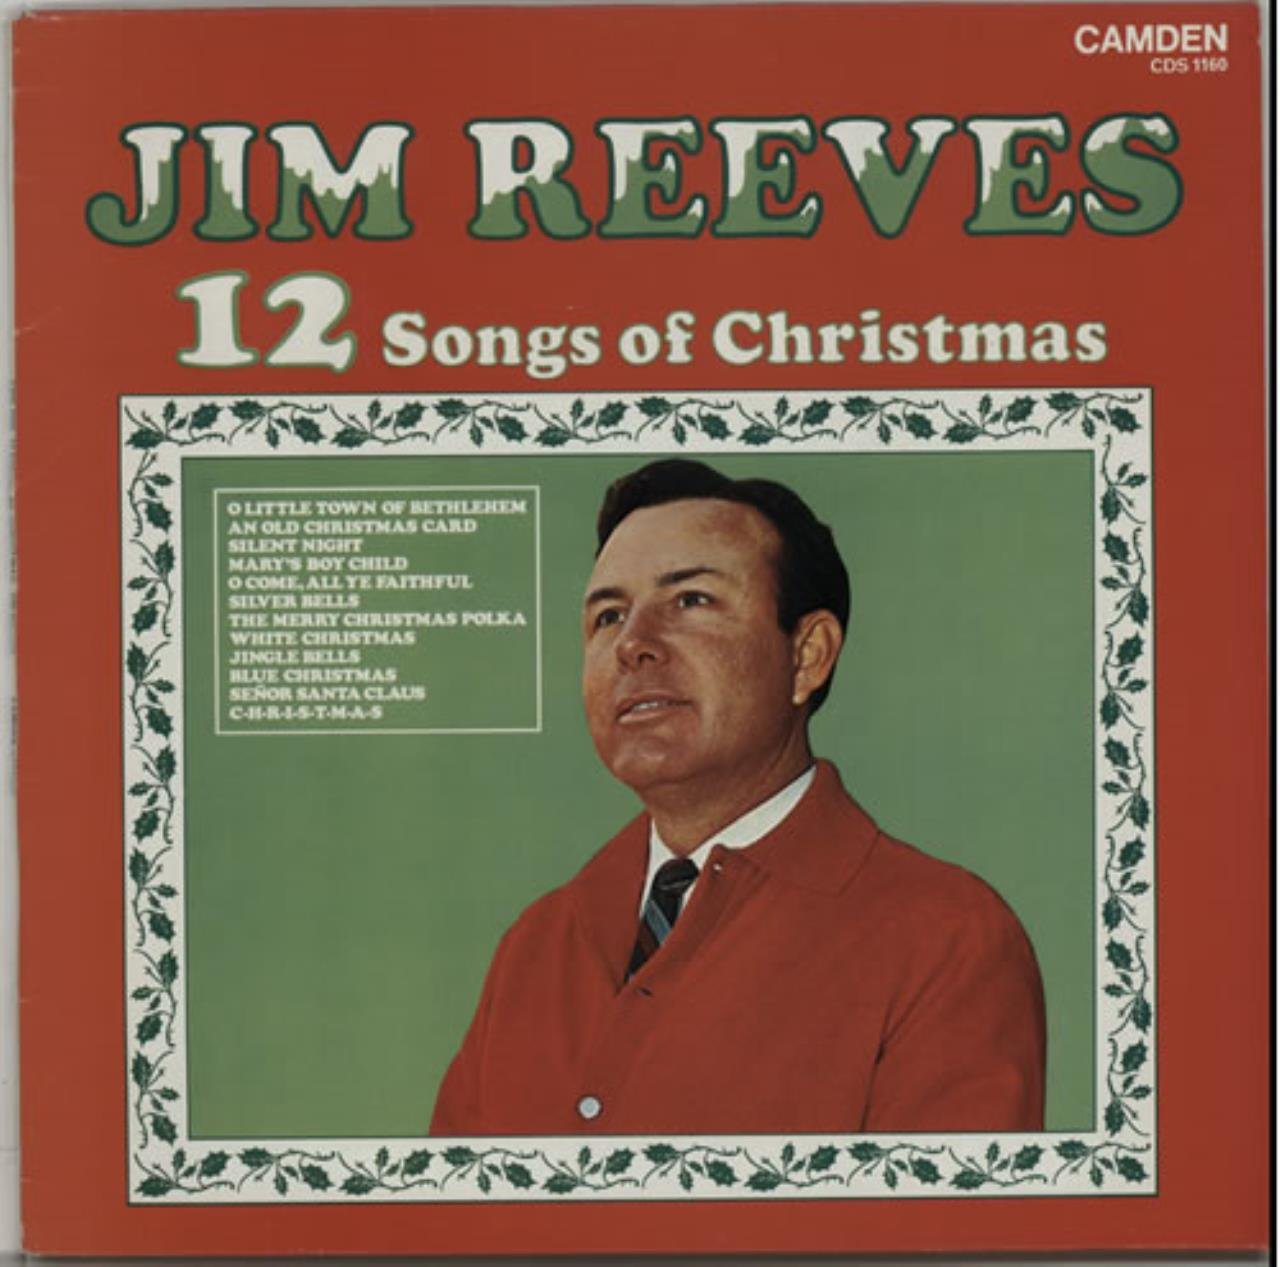 12 Songs Of Christmas - Jim Reeves LP: Jim Reeves: Amazon.ca: Music